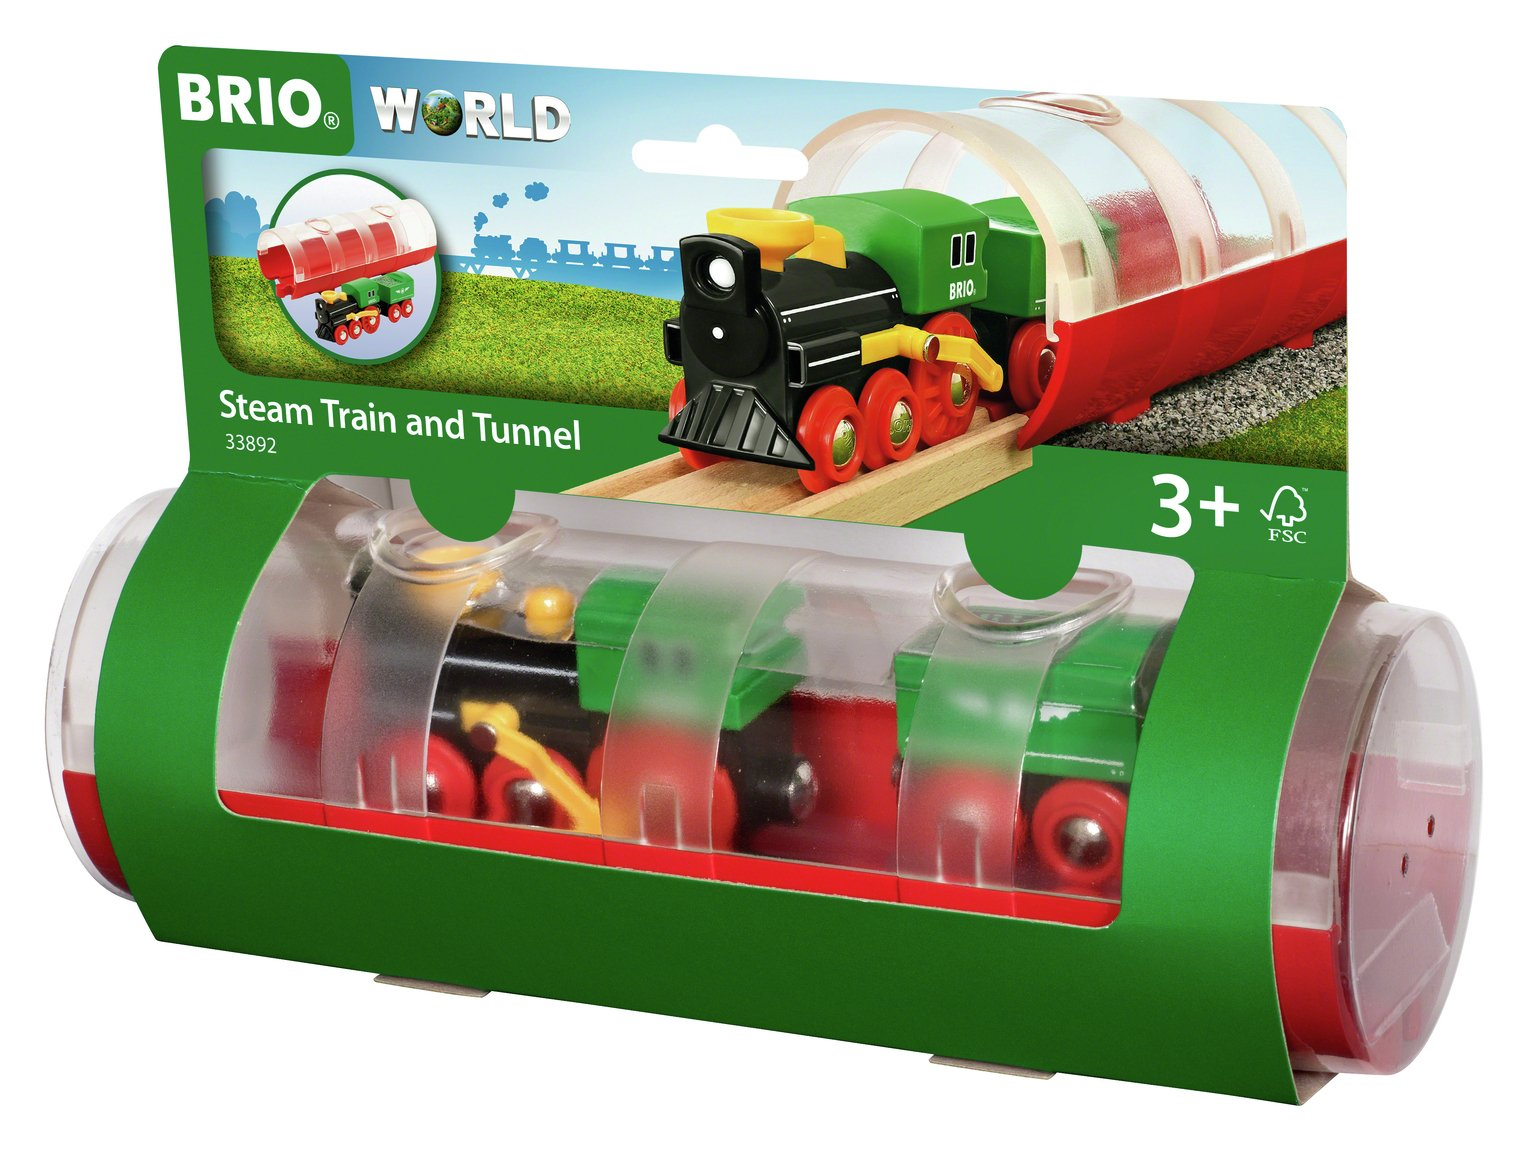 BRIO Tunnel and Steam Train Playset